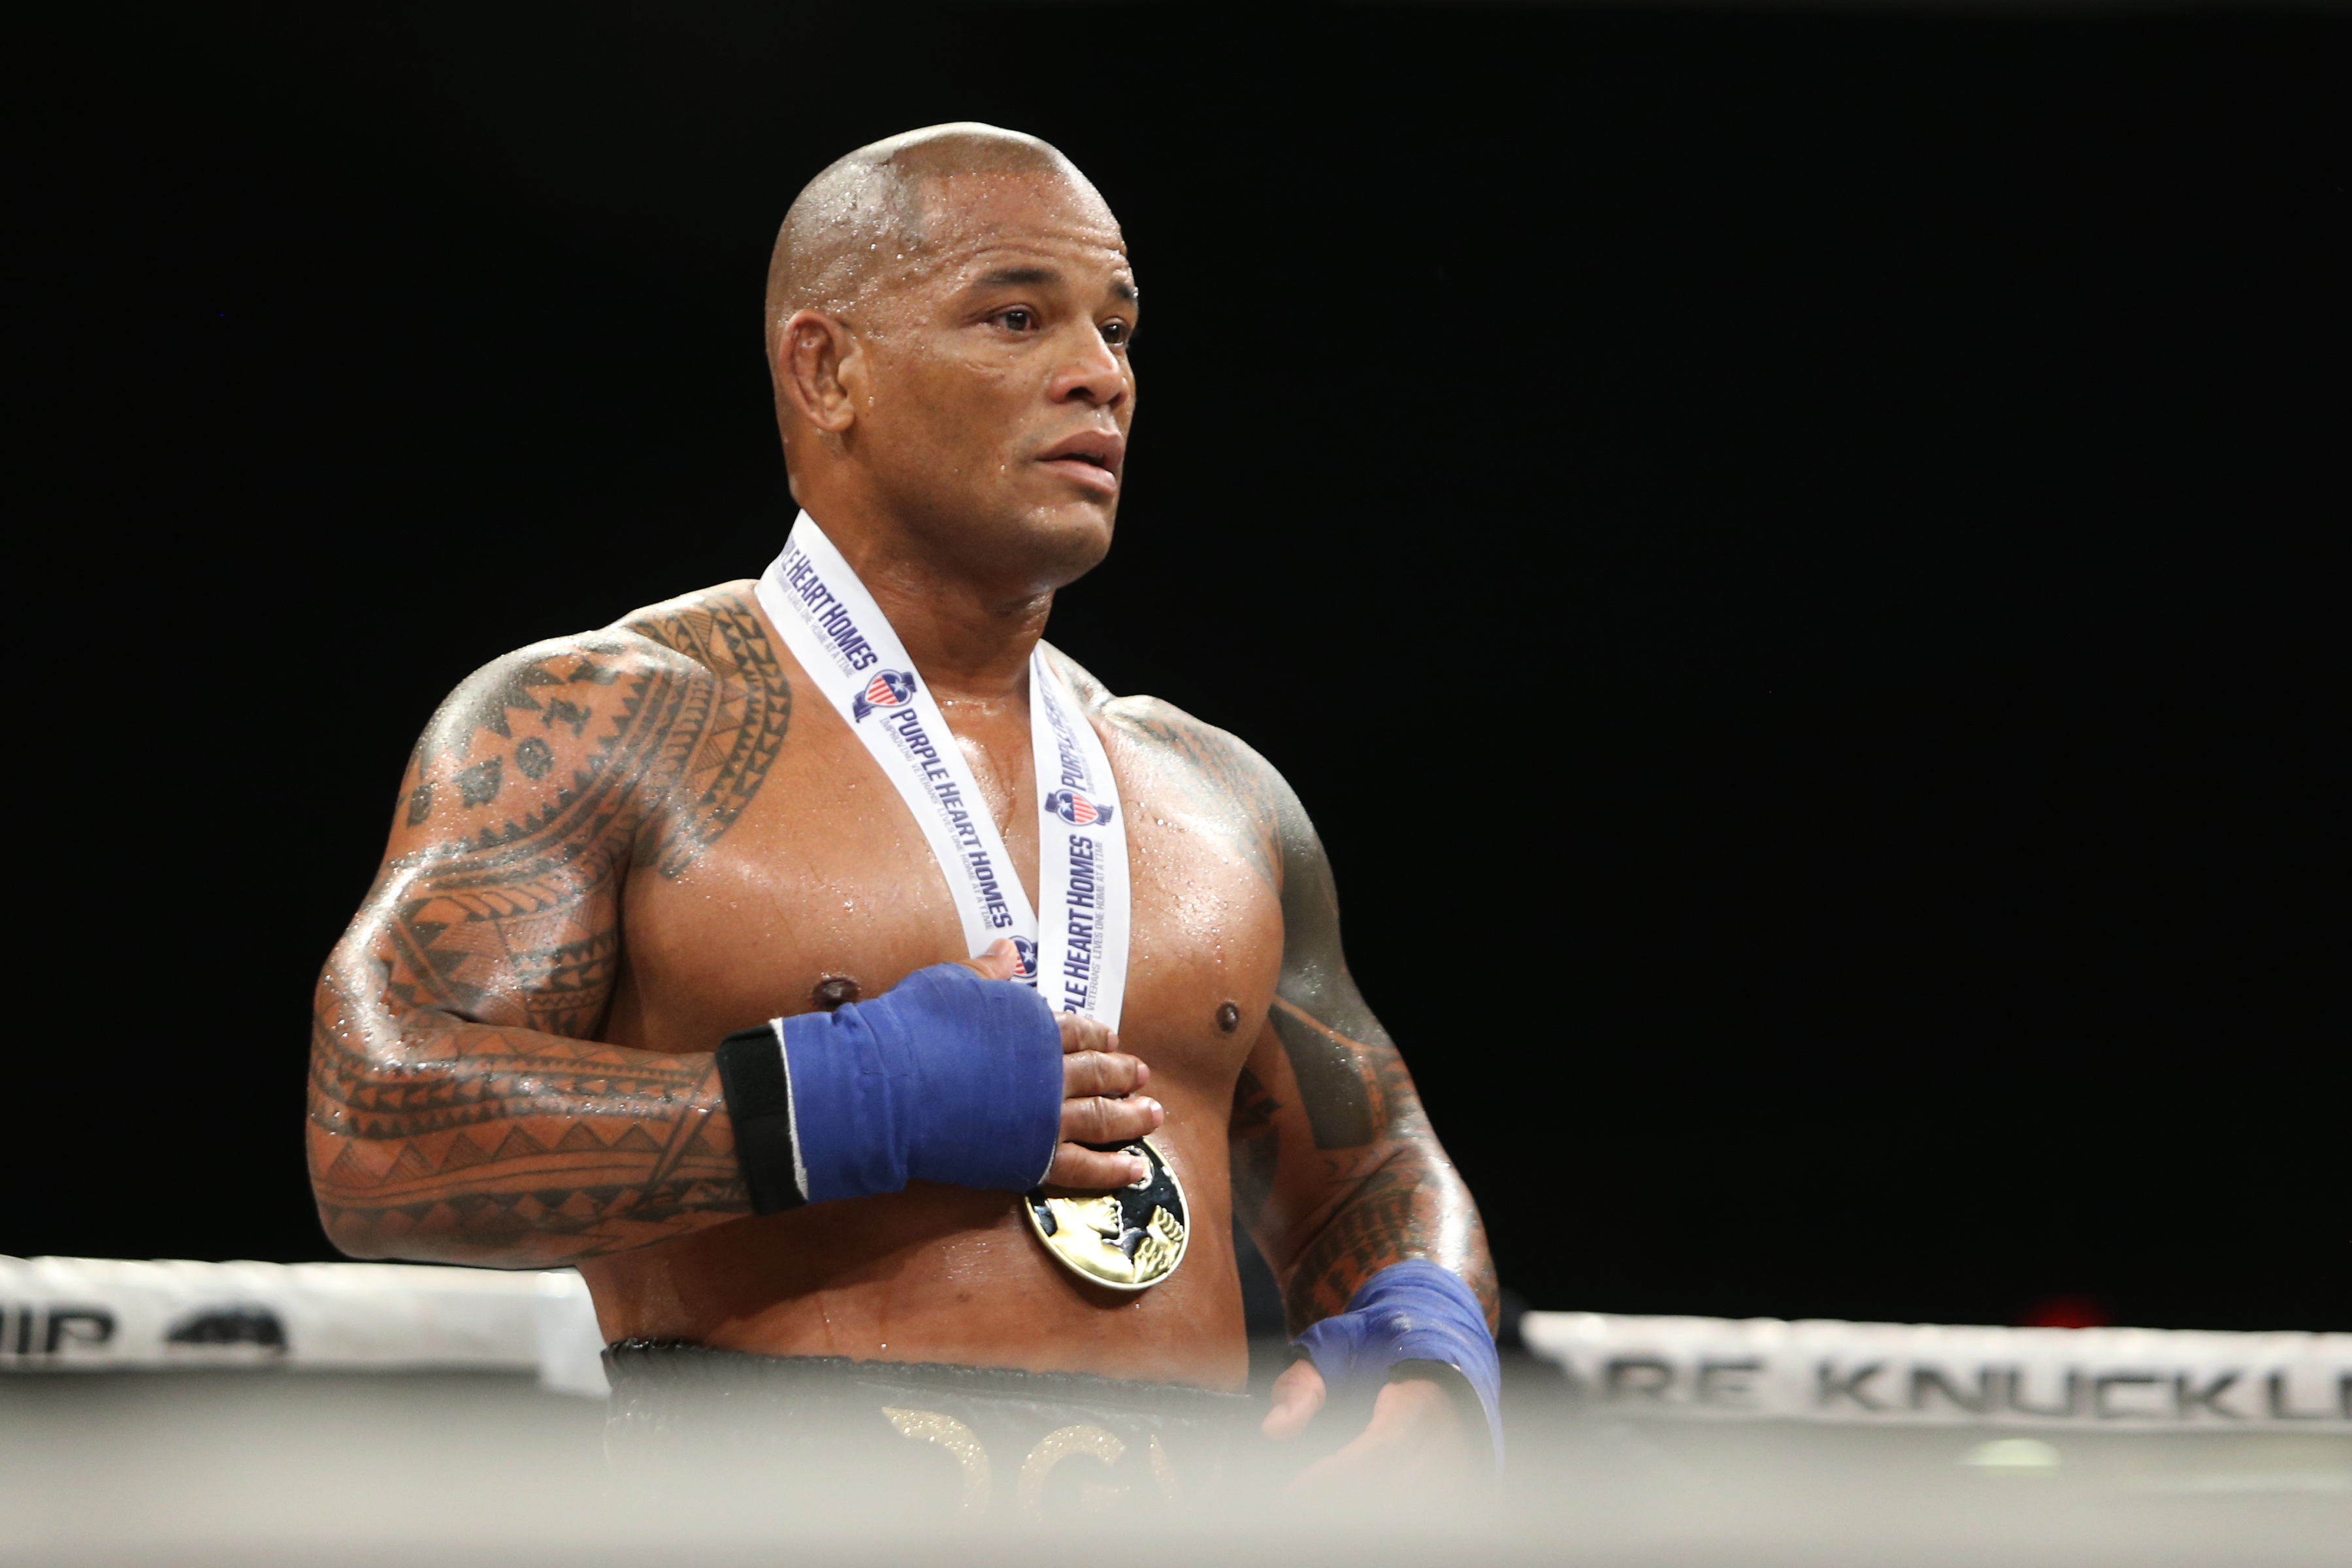 Bare Knuckle Fighting Championship - Hector Lombard v Kendall Grove